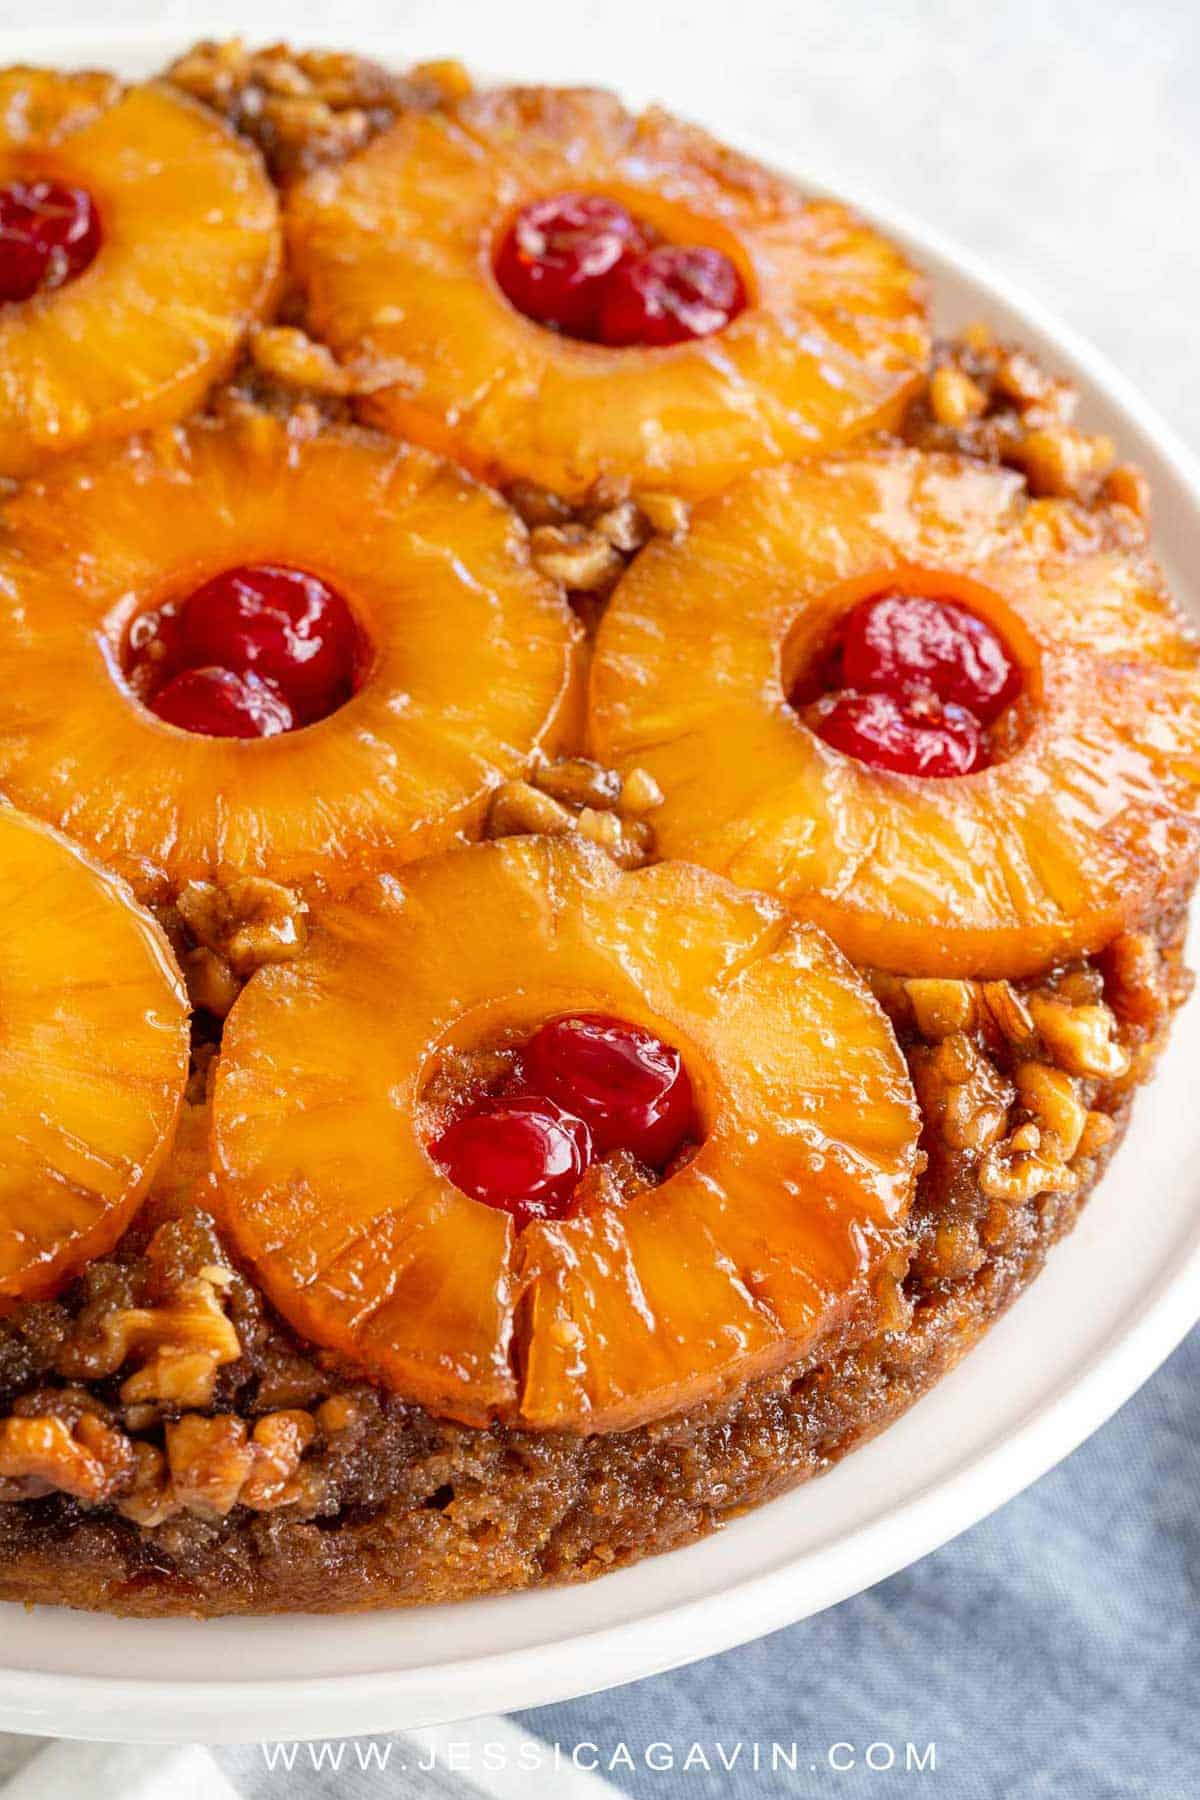 Classic pineapple upside-down cake made from scratch. Tender vanilla cake topped caramelized brown sugar, Maraschino cherries, walnuts, and pineapple rings. #cake #pineapple #dessert #party